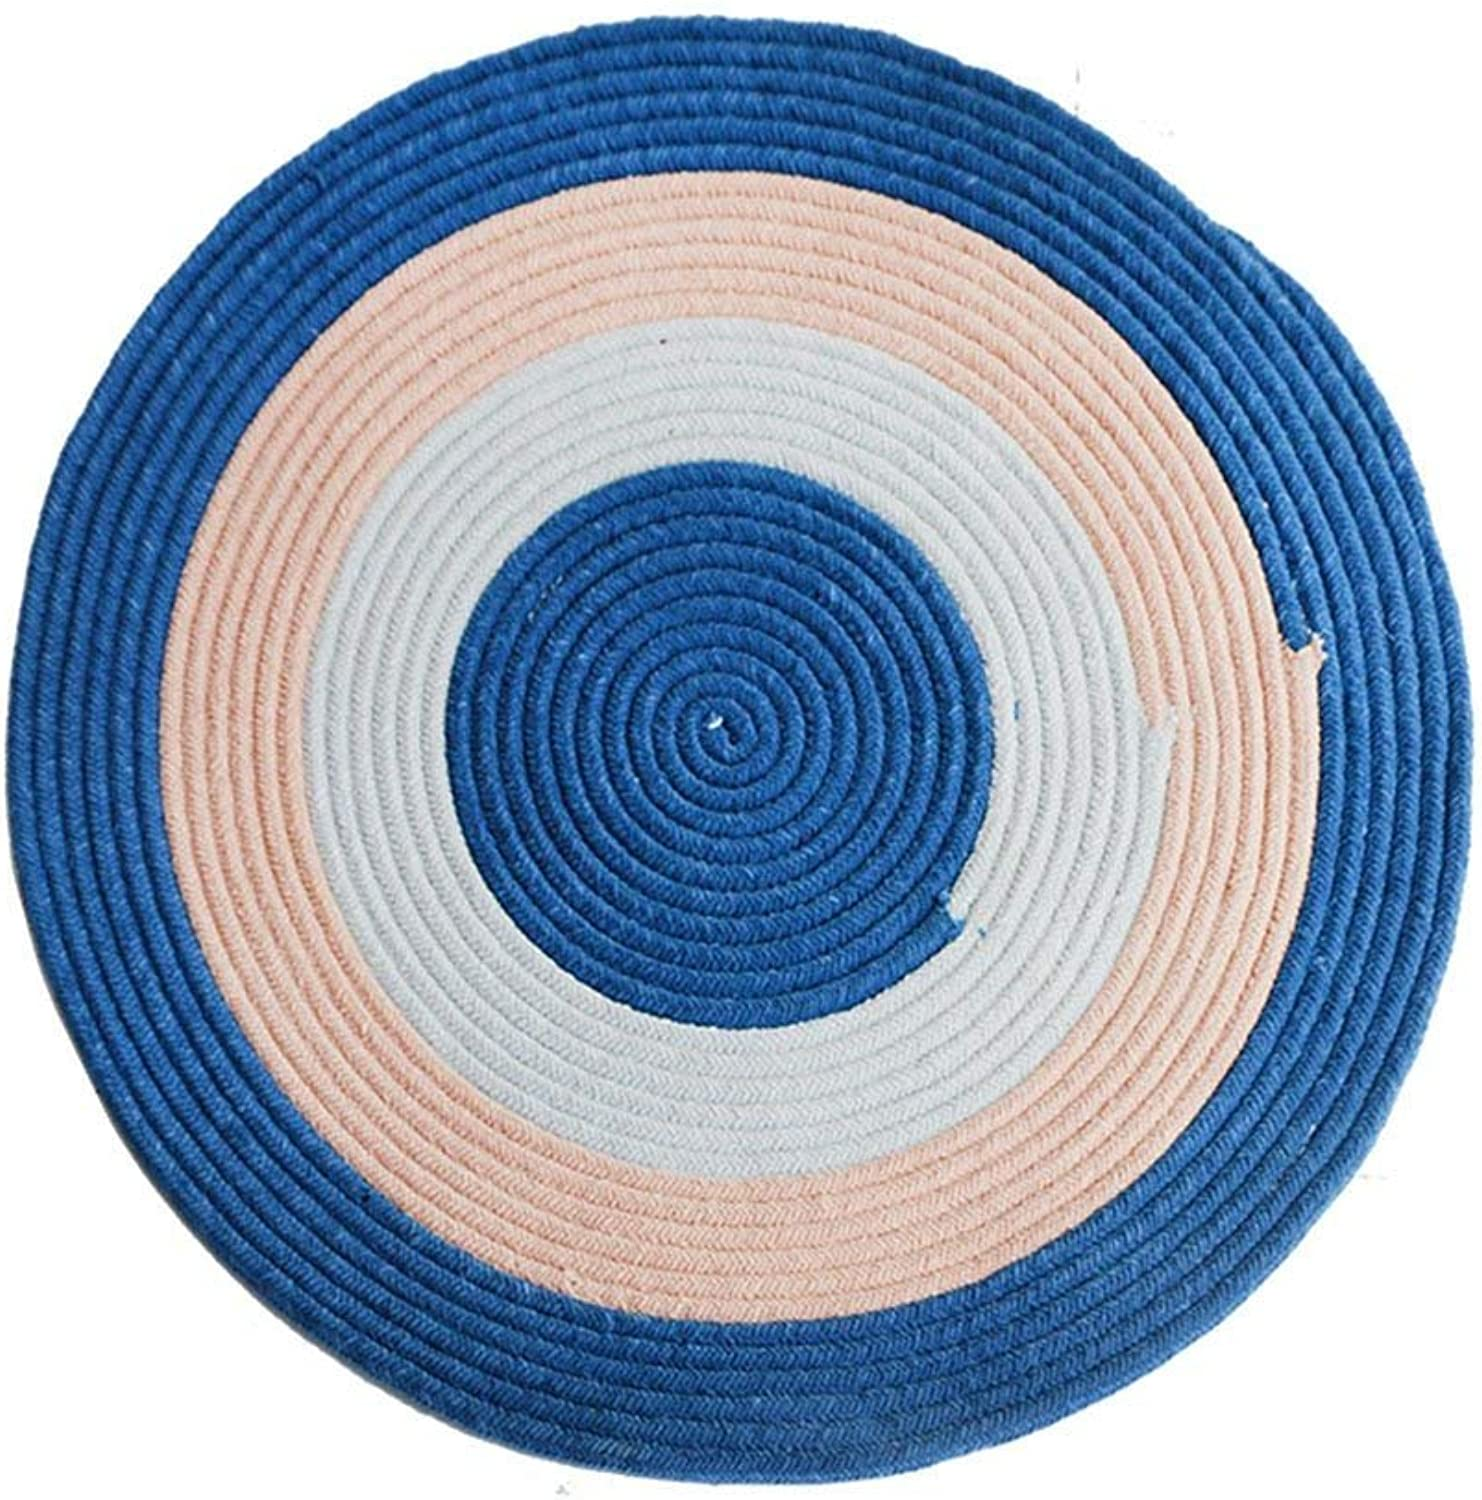 Round Carpet, color Chenille Weaving Round Carpet Modern Simple Living Room Bedroom Study Basket Computer Chair 160x160cm, Soft and Comfortable (color    1, Size   100  100cm)